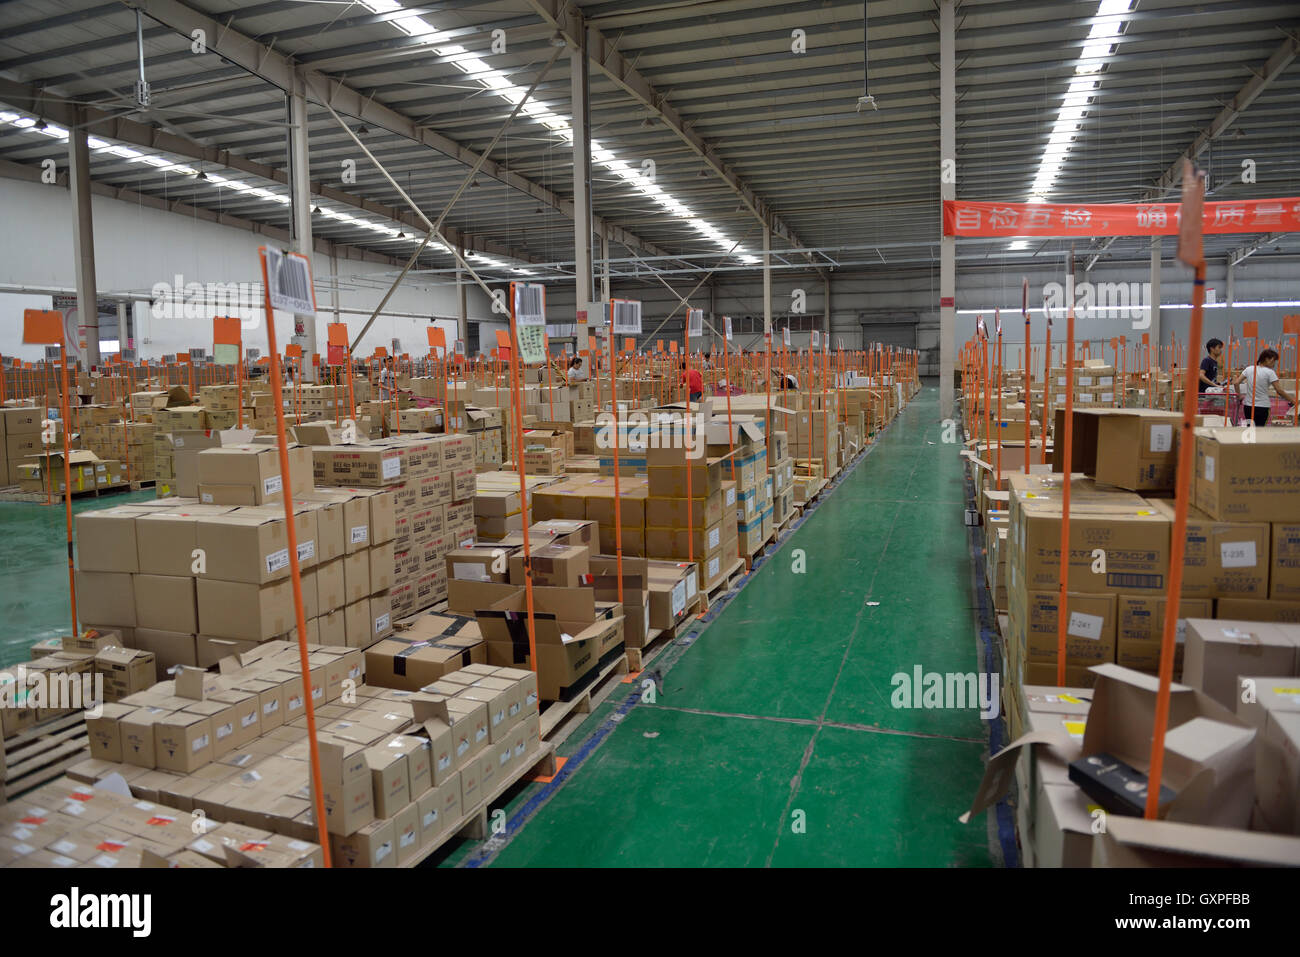 Storehouse for goods shopped from overseas through Jumei Global online channel during delivery at EHL International - Stock Image